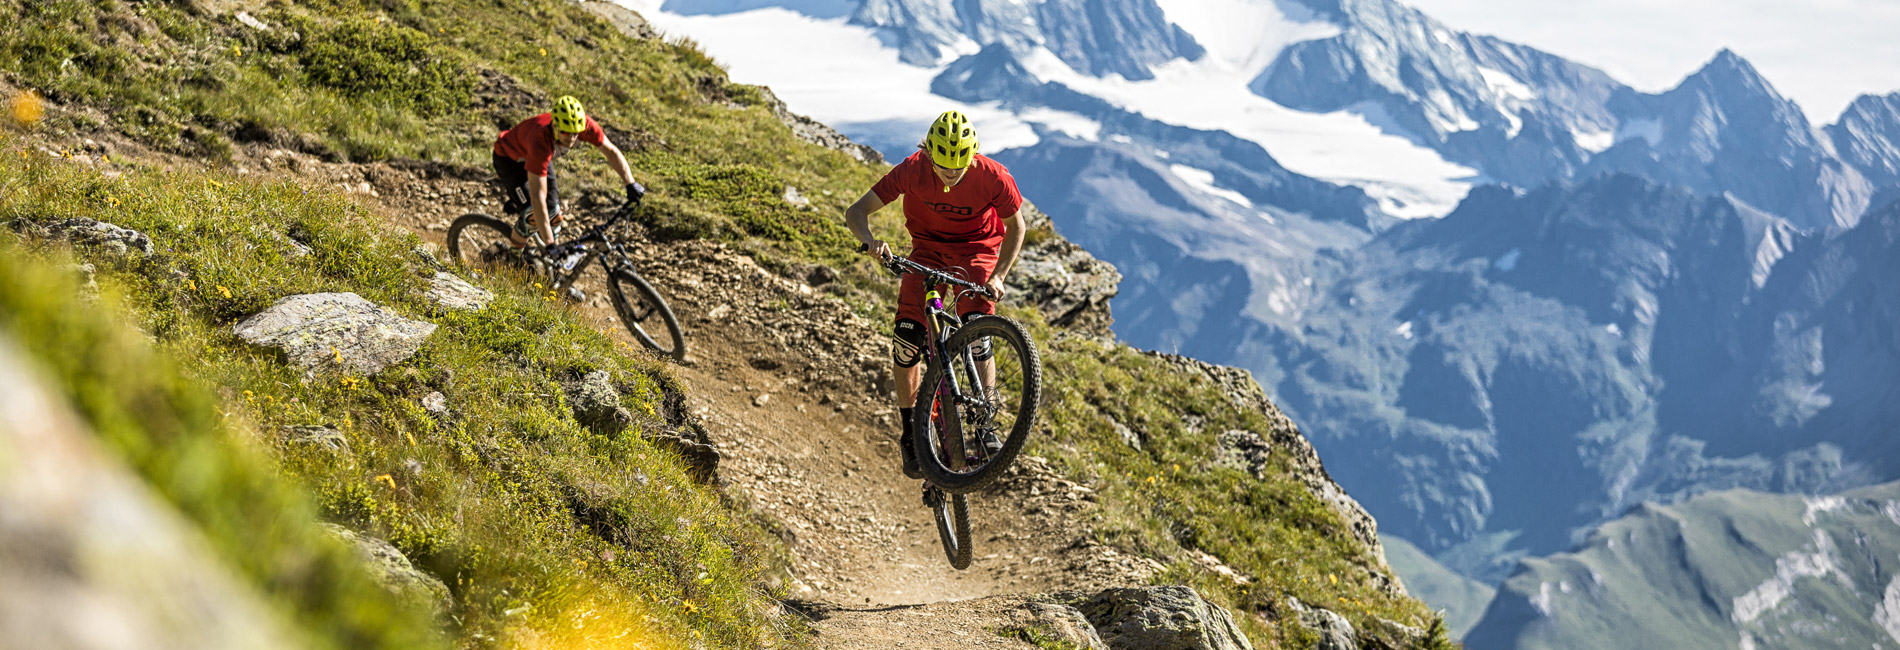 Downhillbiken und Freeriden in Tirol - Bikepark Kals am Großglockner - copyright Andreas Meyer